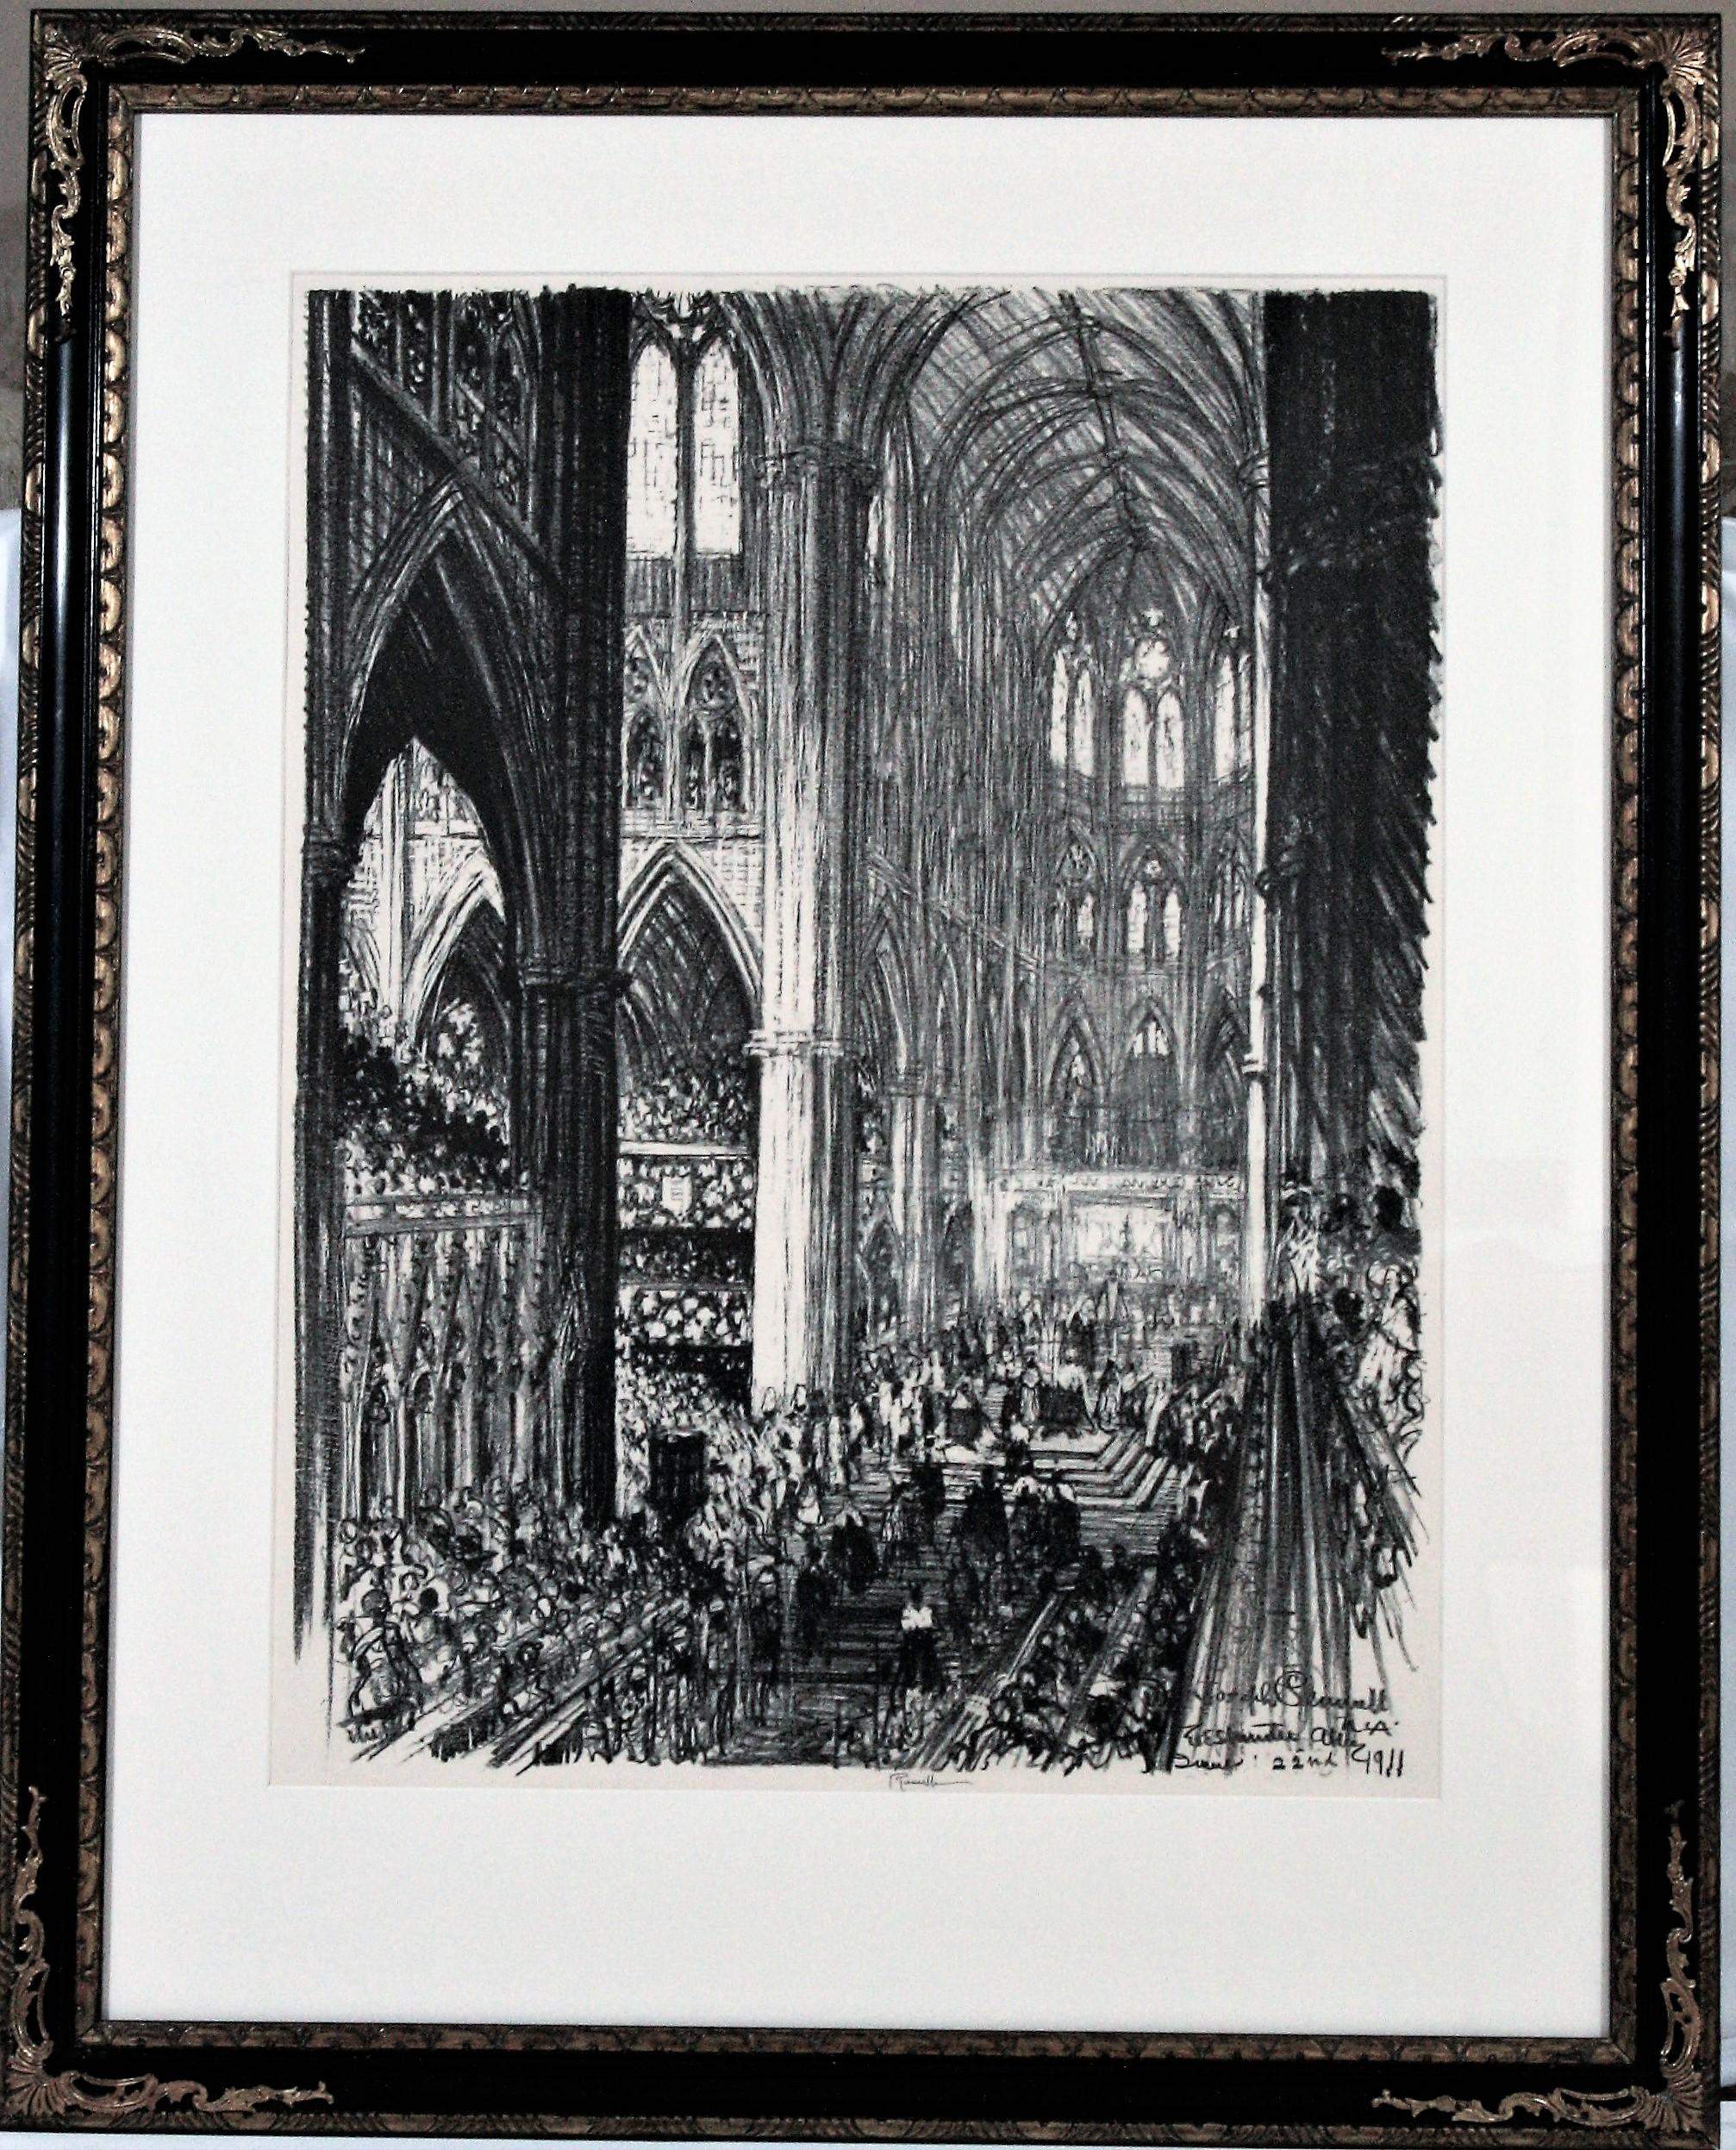 Coronation of King George V and Queen Mary in Westminster Abbey. June 22, 1911.